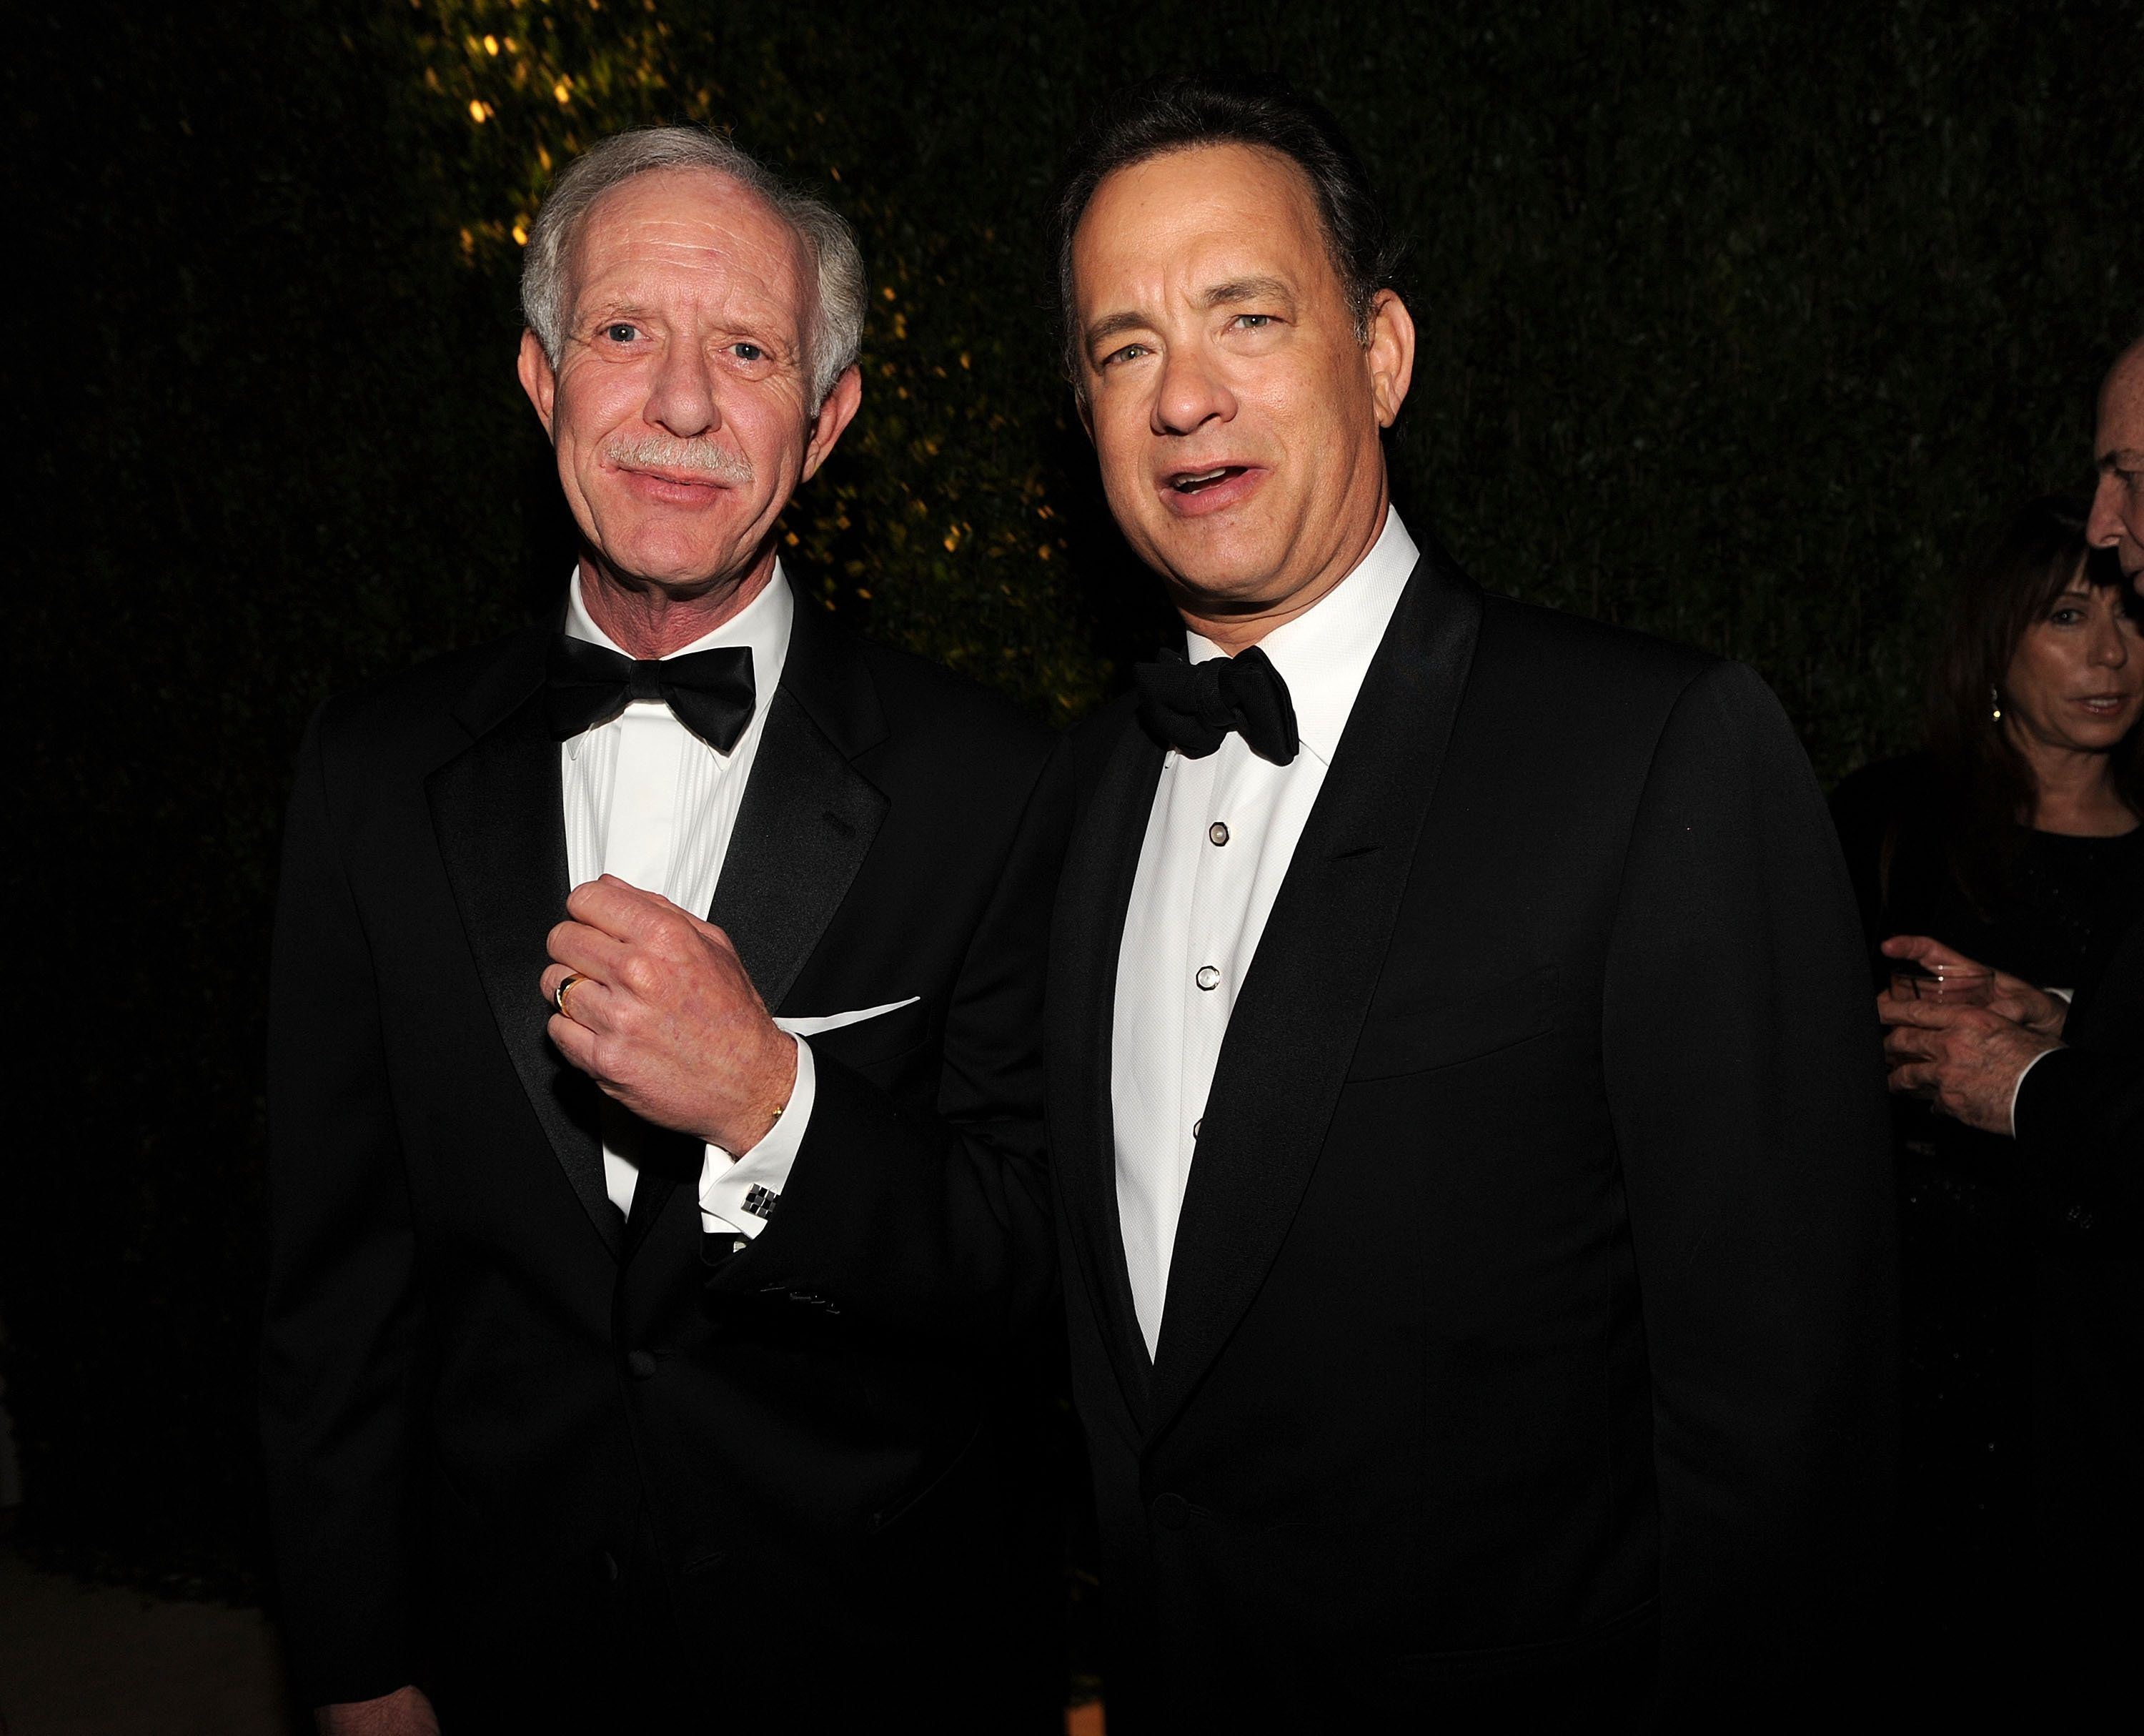 (EXCLUSIVE, Premium Rates Apply) WEST HOLLYWOOD, CA - MARCH 07:  *EXCLUSIVE* Pilot Chesley 'Sully' Sullenberger (L) and Tom Hanks attend the 2010 Vanity Fair Oscar Party hosted by Graydon Carter at the Sunset Tower Hotel on March 7, 2010 in West Hollywood, California. ***EXCLUSIVE ACCESS SPECIAL RATES APPLY; NO NORTH AMERICAN ON-AIR BROADCAST UNTIL MARCH 14TH, 2010***  (Photo by Kevin Mazur/VF1/WireImage)